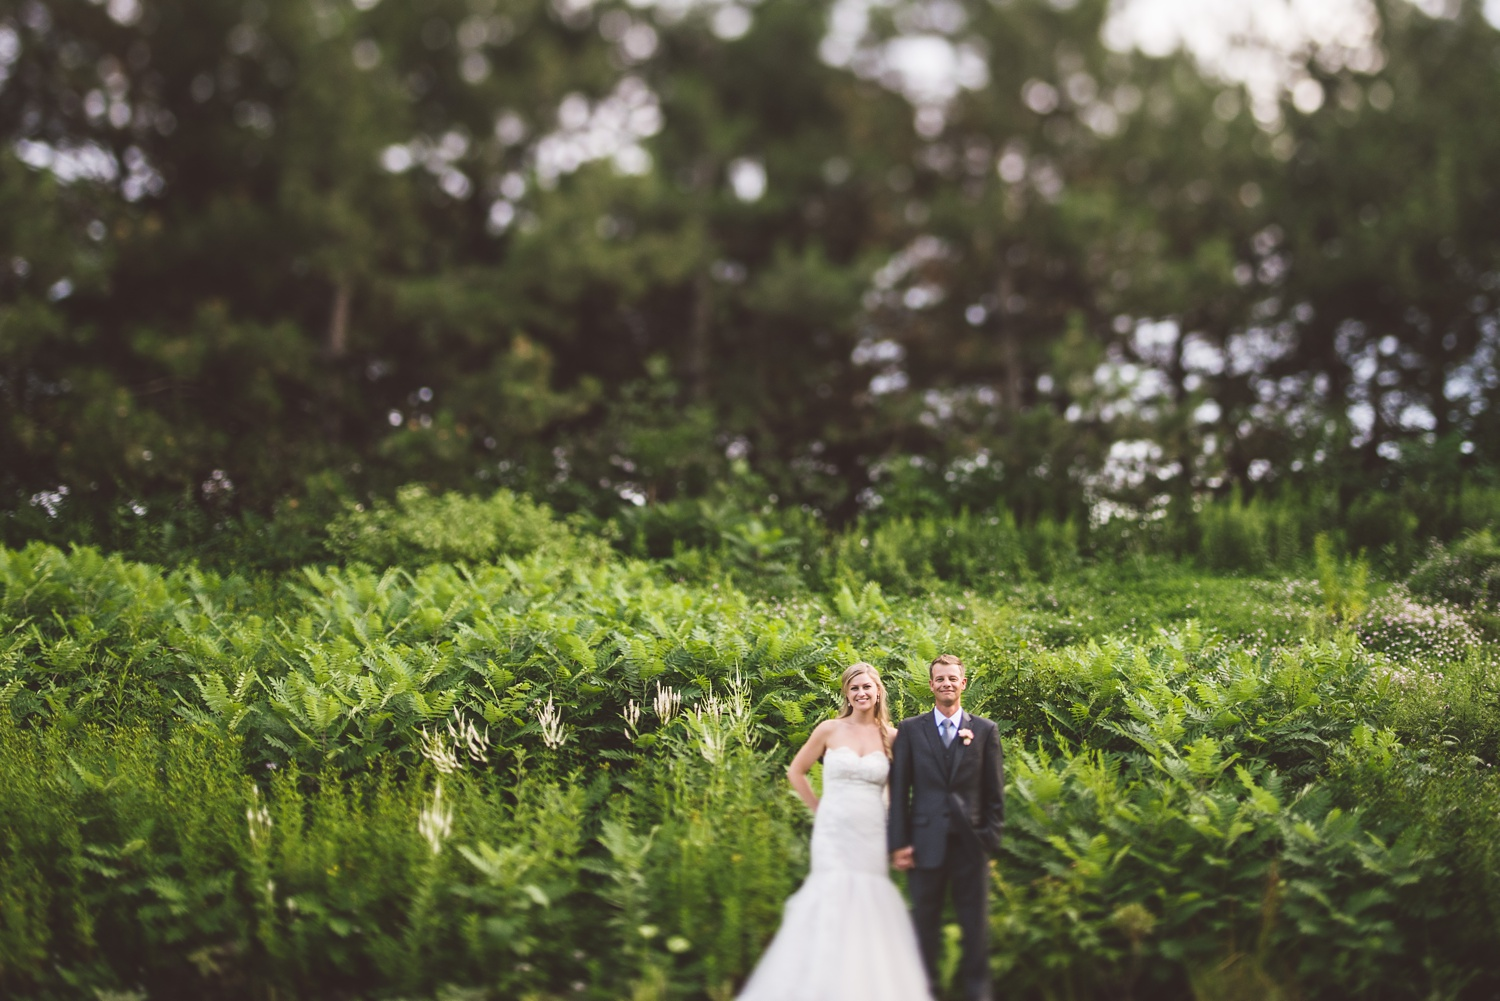 Best_wedding_photos_Minneapolis_minnesota_lucas_botz_photographty_05.jpg